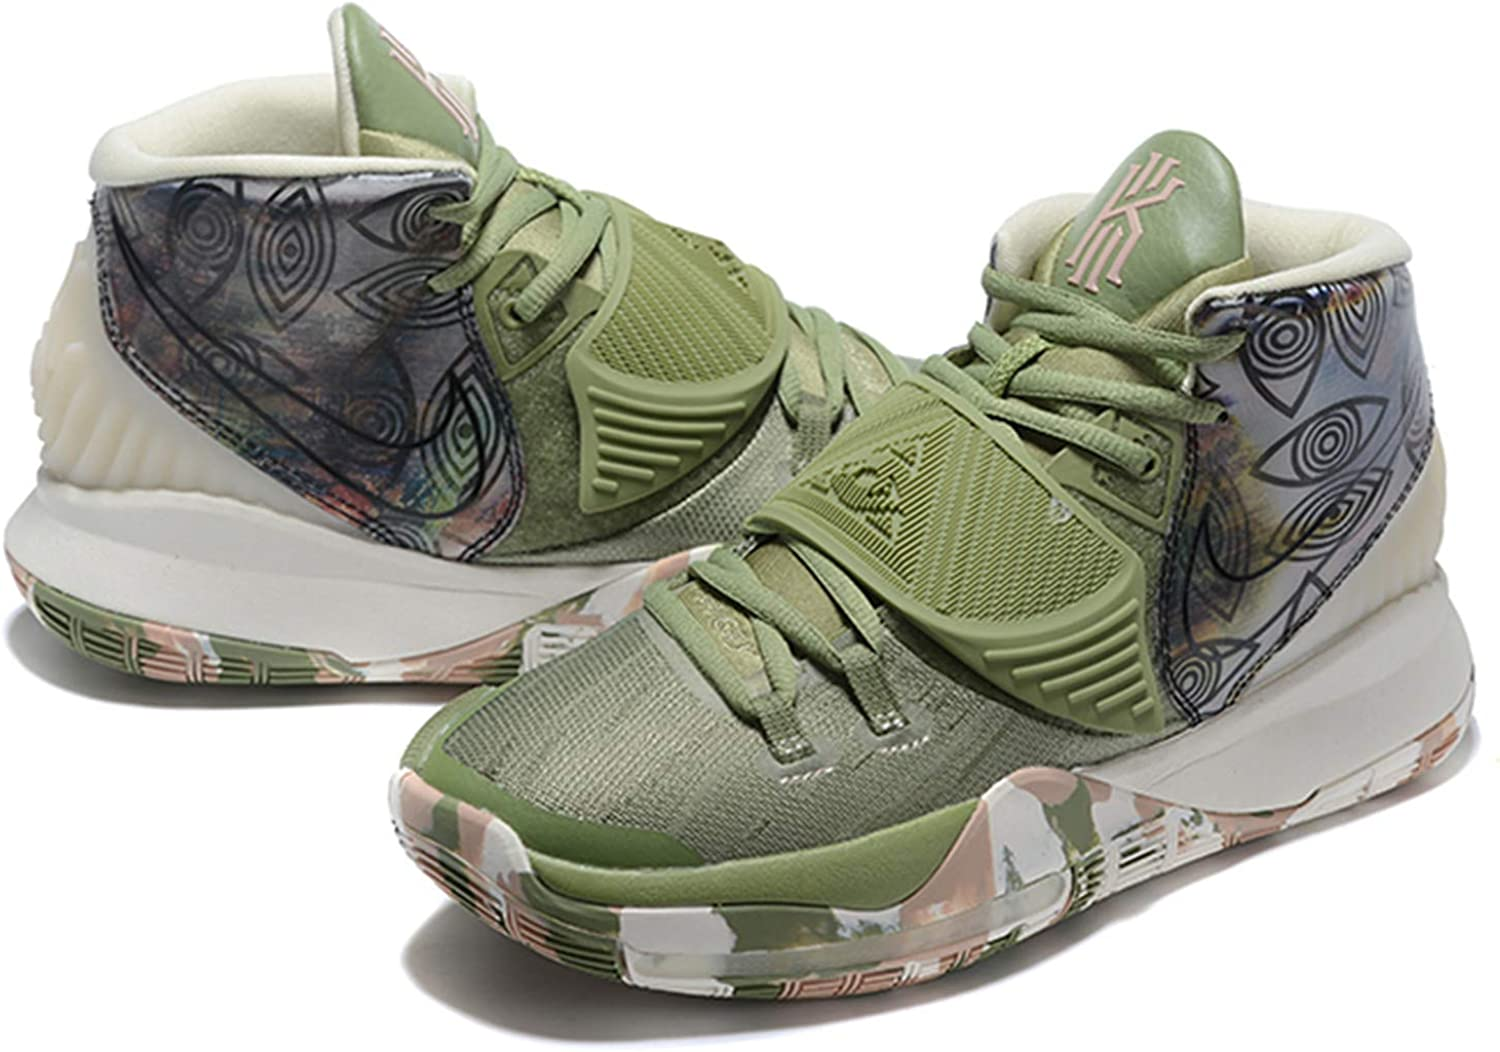 Amazon.com: Zoom Kyrie 6 Men's Basketball Shoes Green/White ...